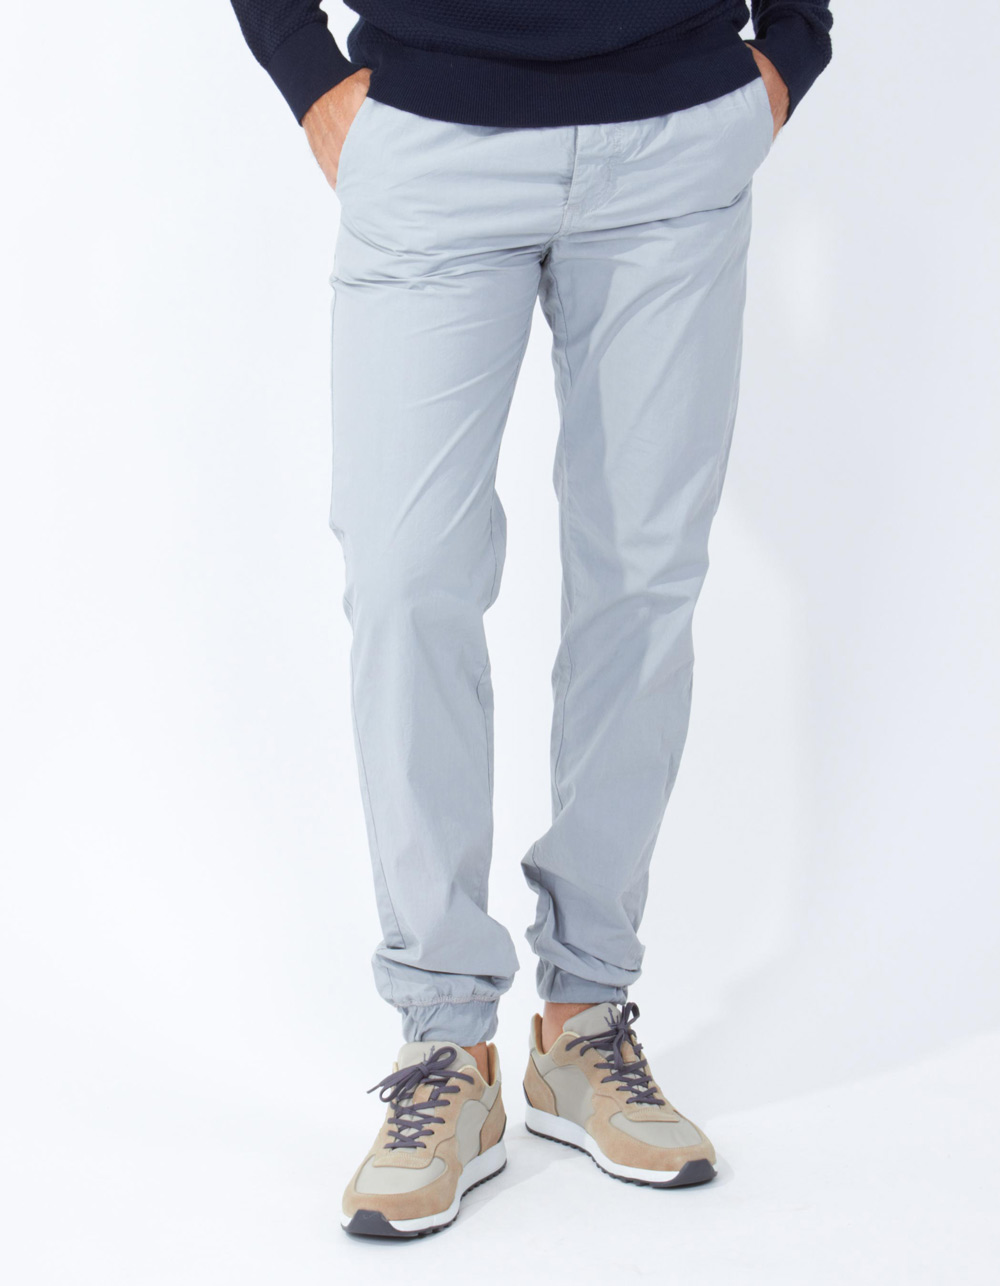 Grey jogging trousers - Backside